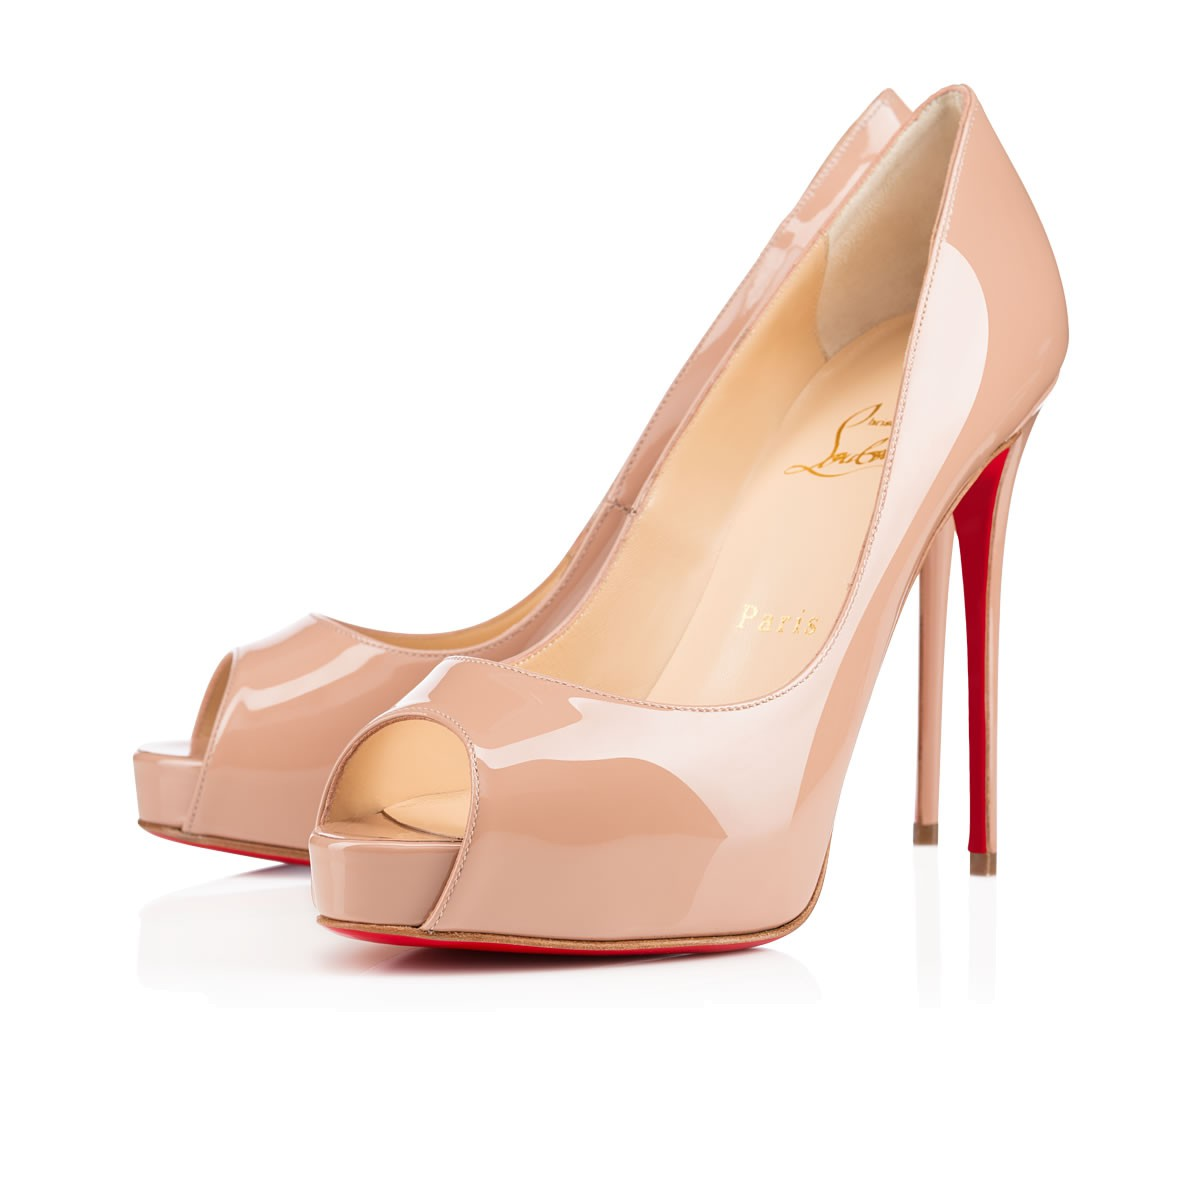 New Very Prive 120 Patent Leather Peep Toe Pumps in Nude